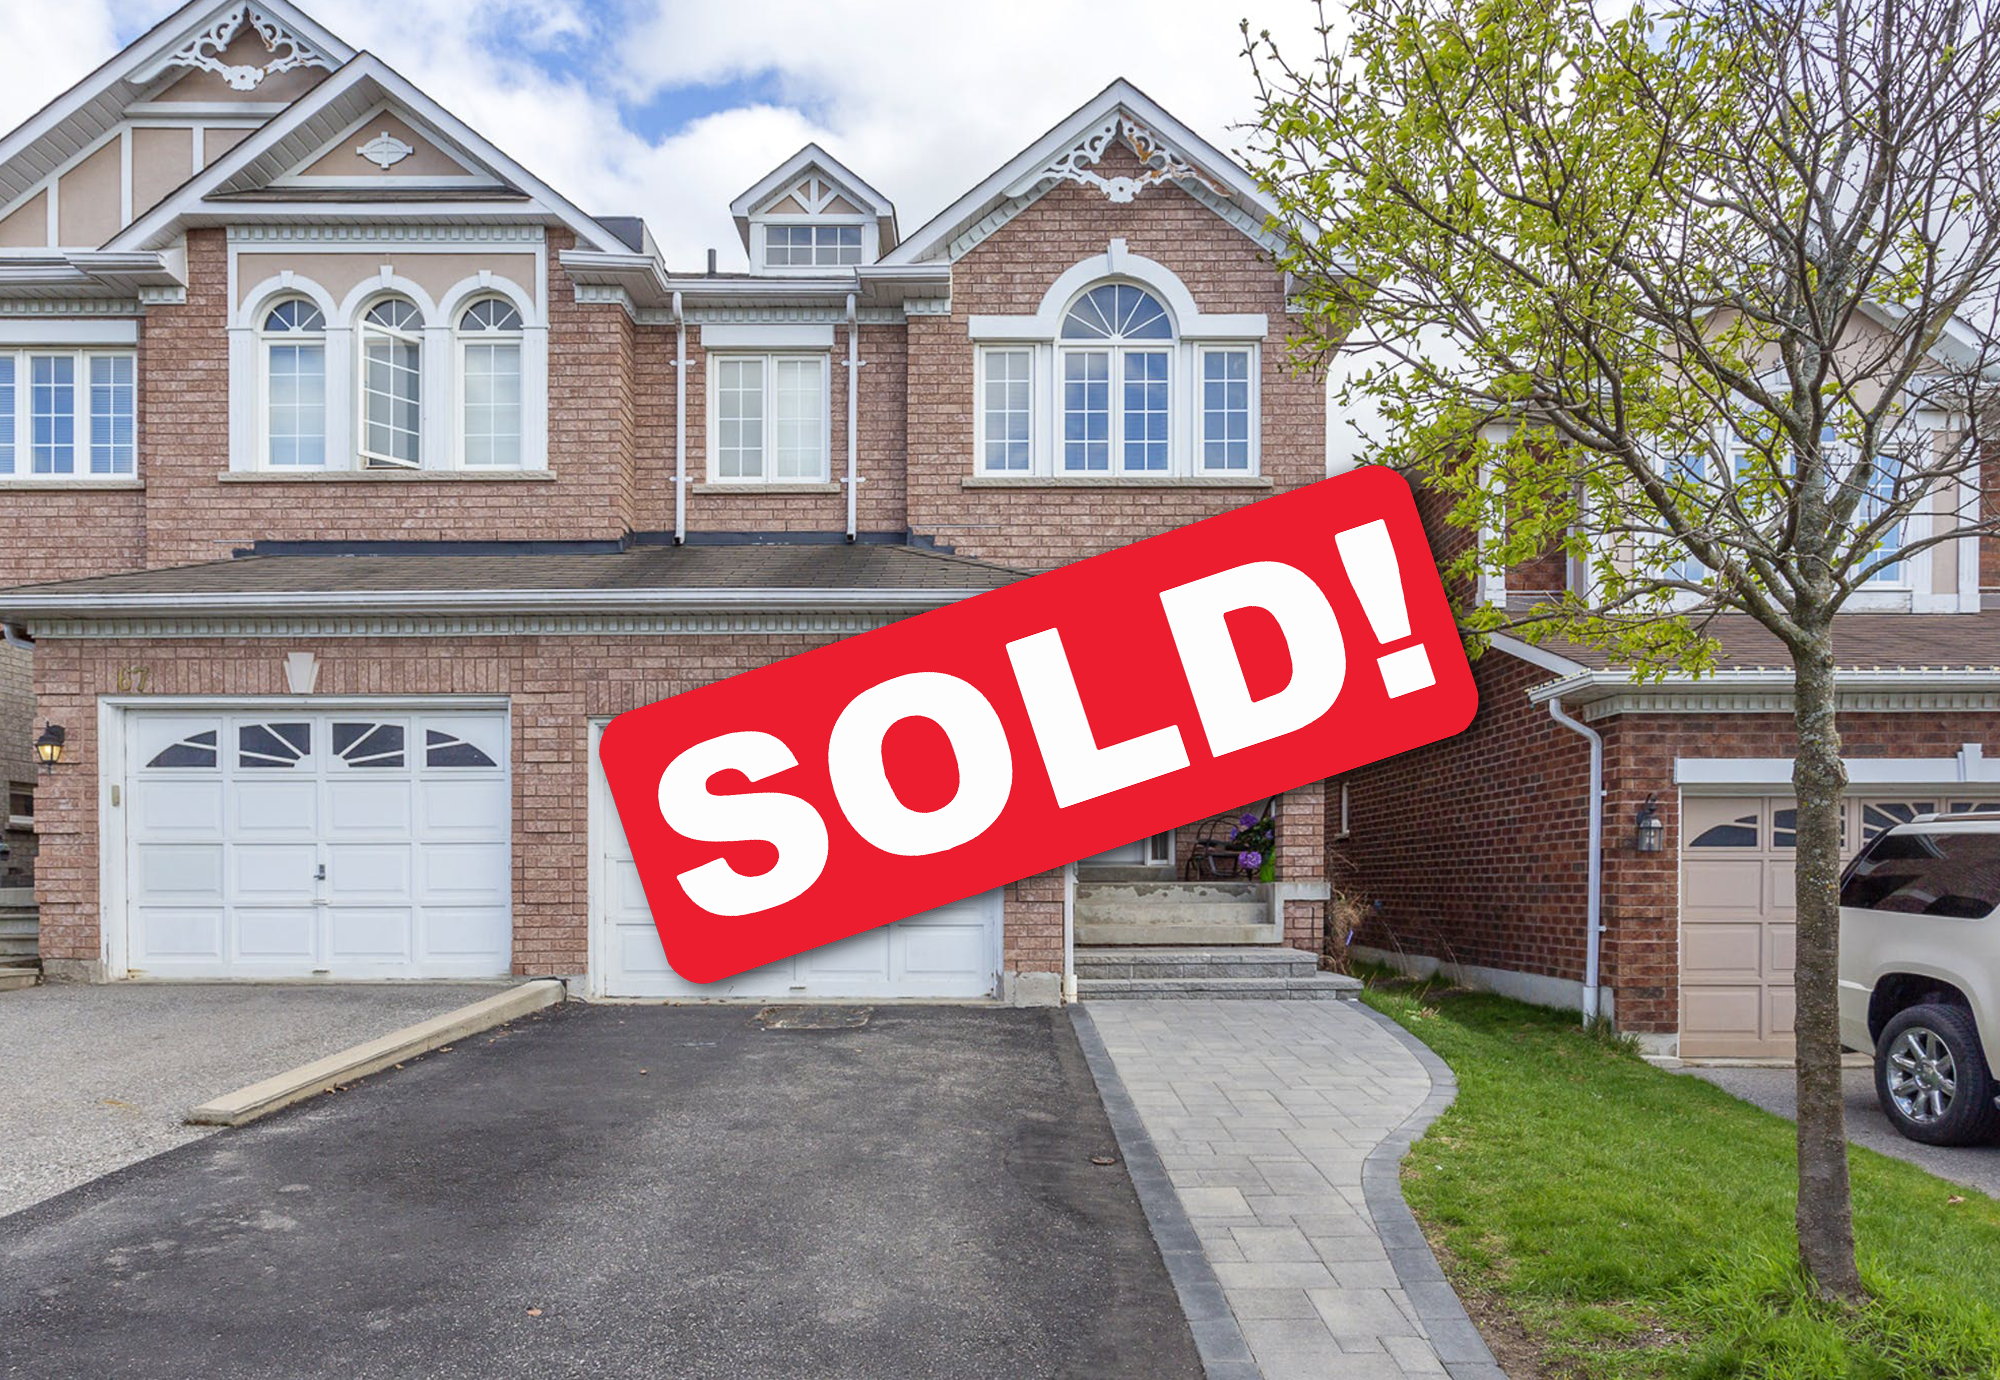 Beautiful, Semi-Detached John Boddy Home in Highly Coveted Eagle Glen Community